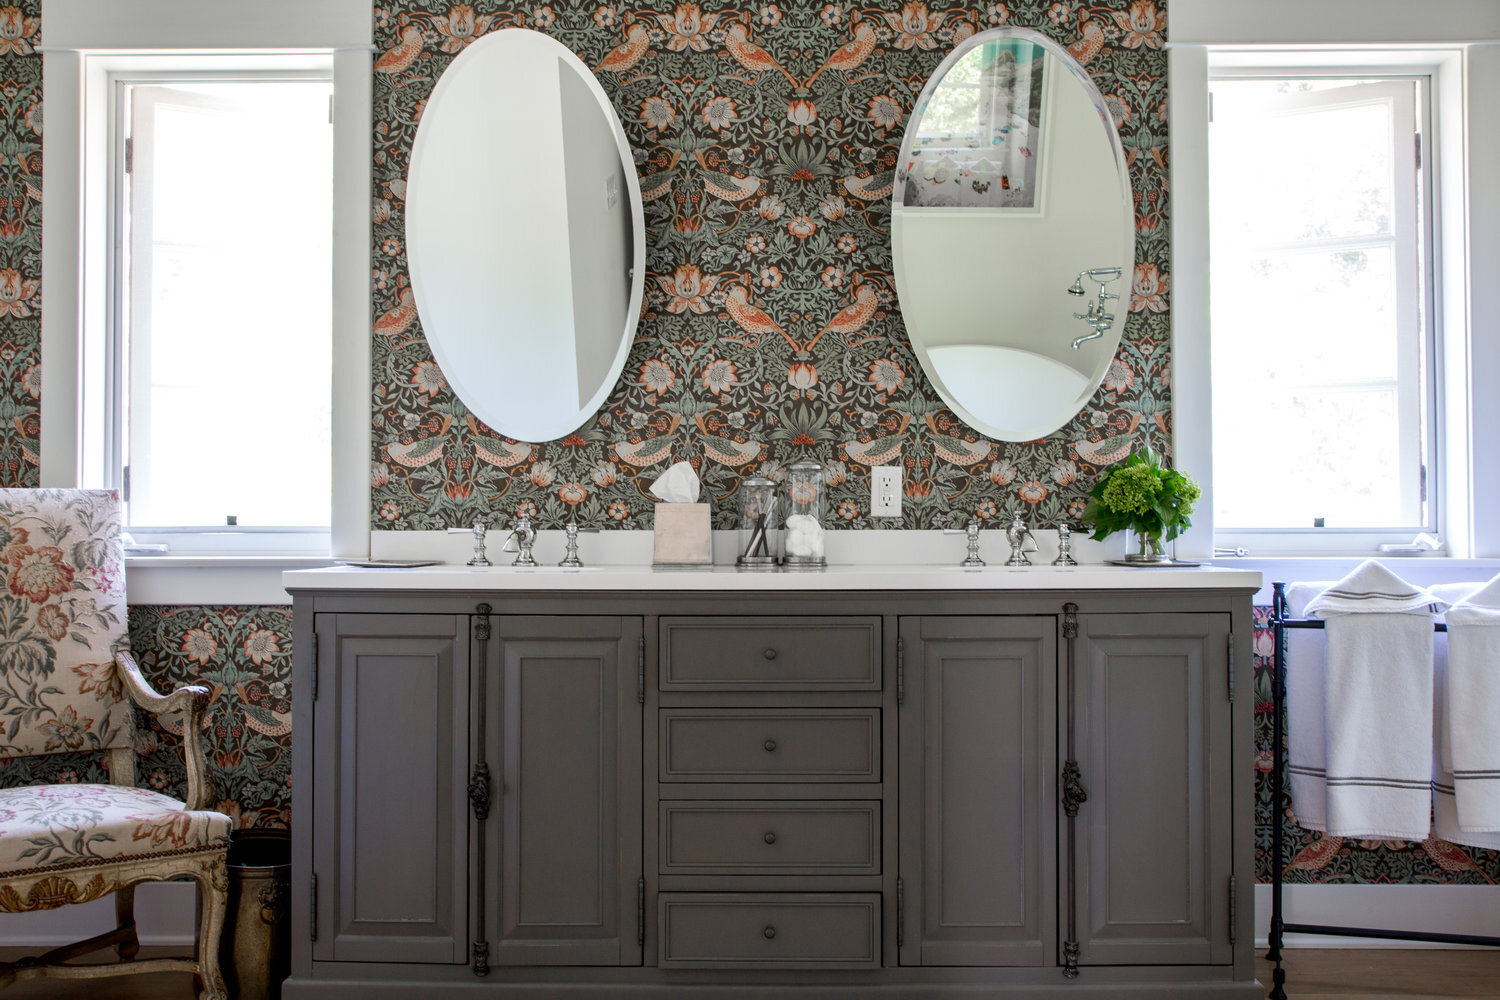 floral-patterned bathroom with double sink vanity